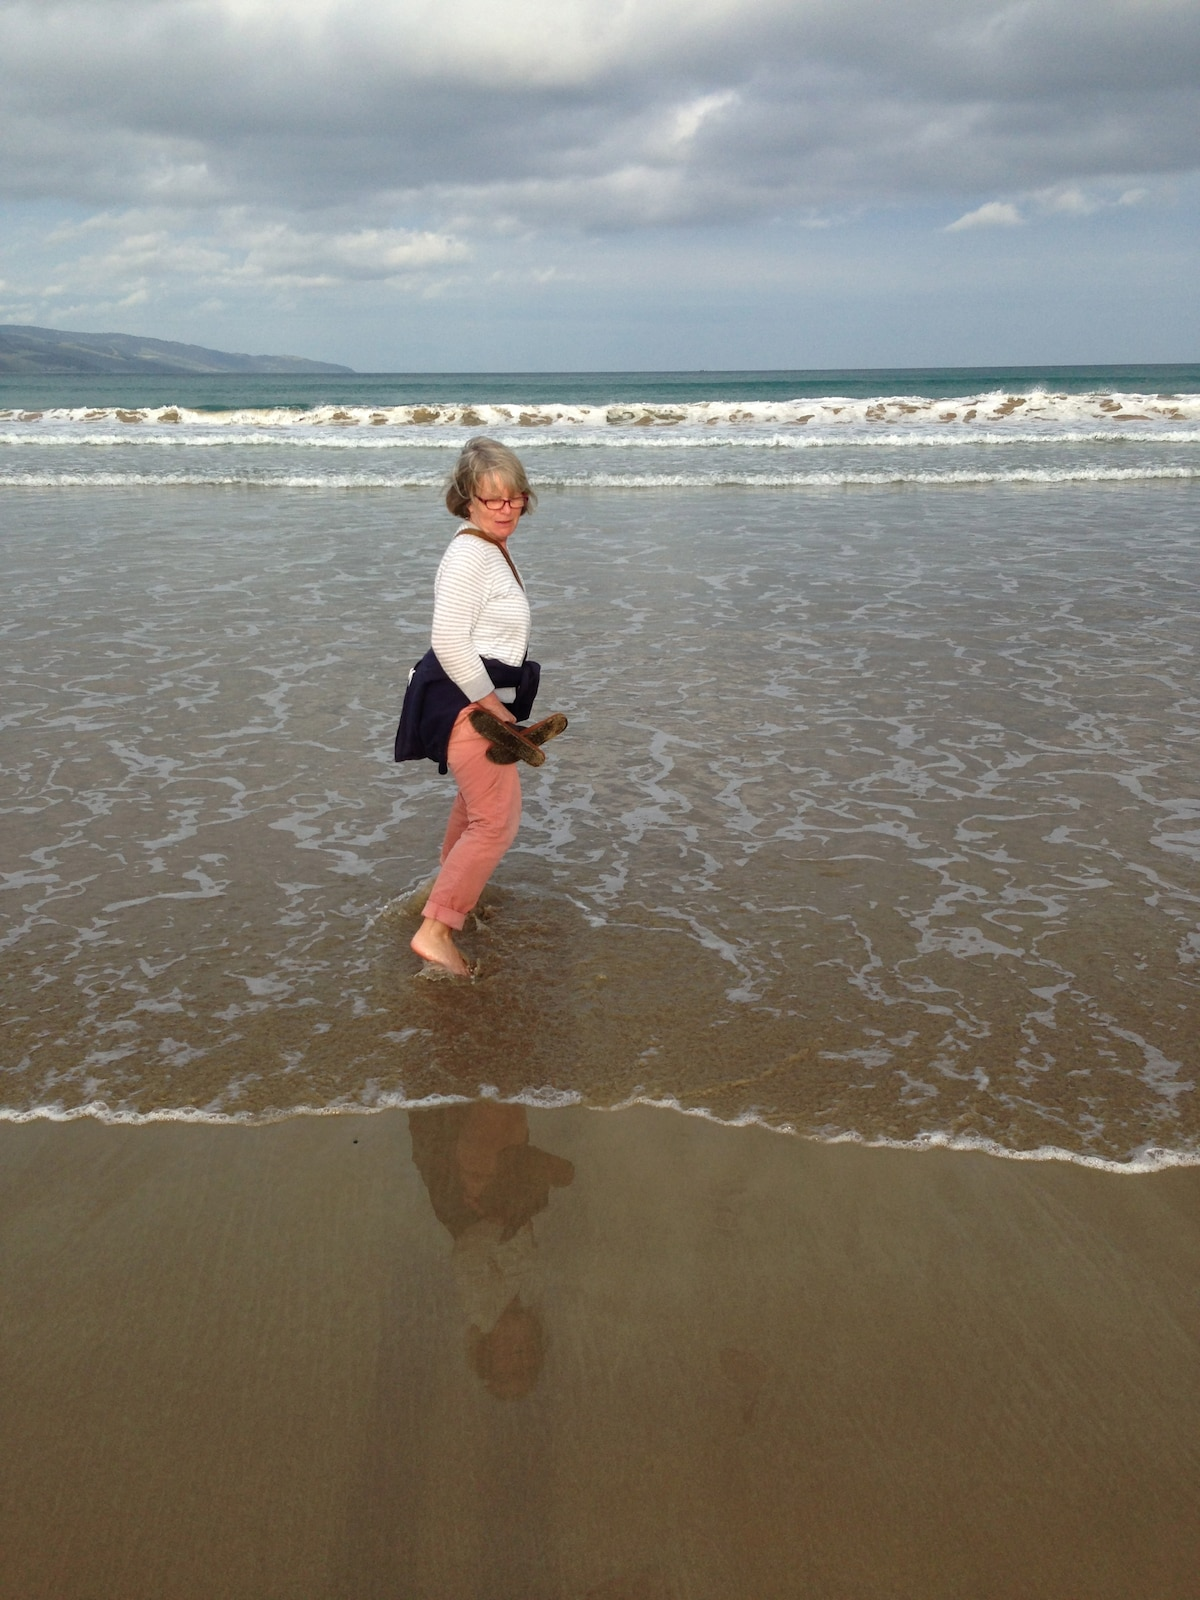 I moved to Weston-super-Mare about 4 years ago, ha